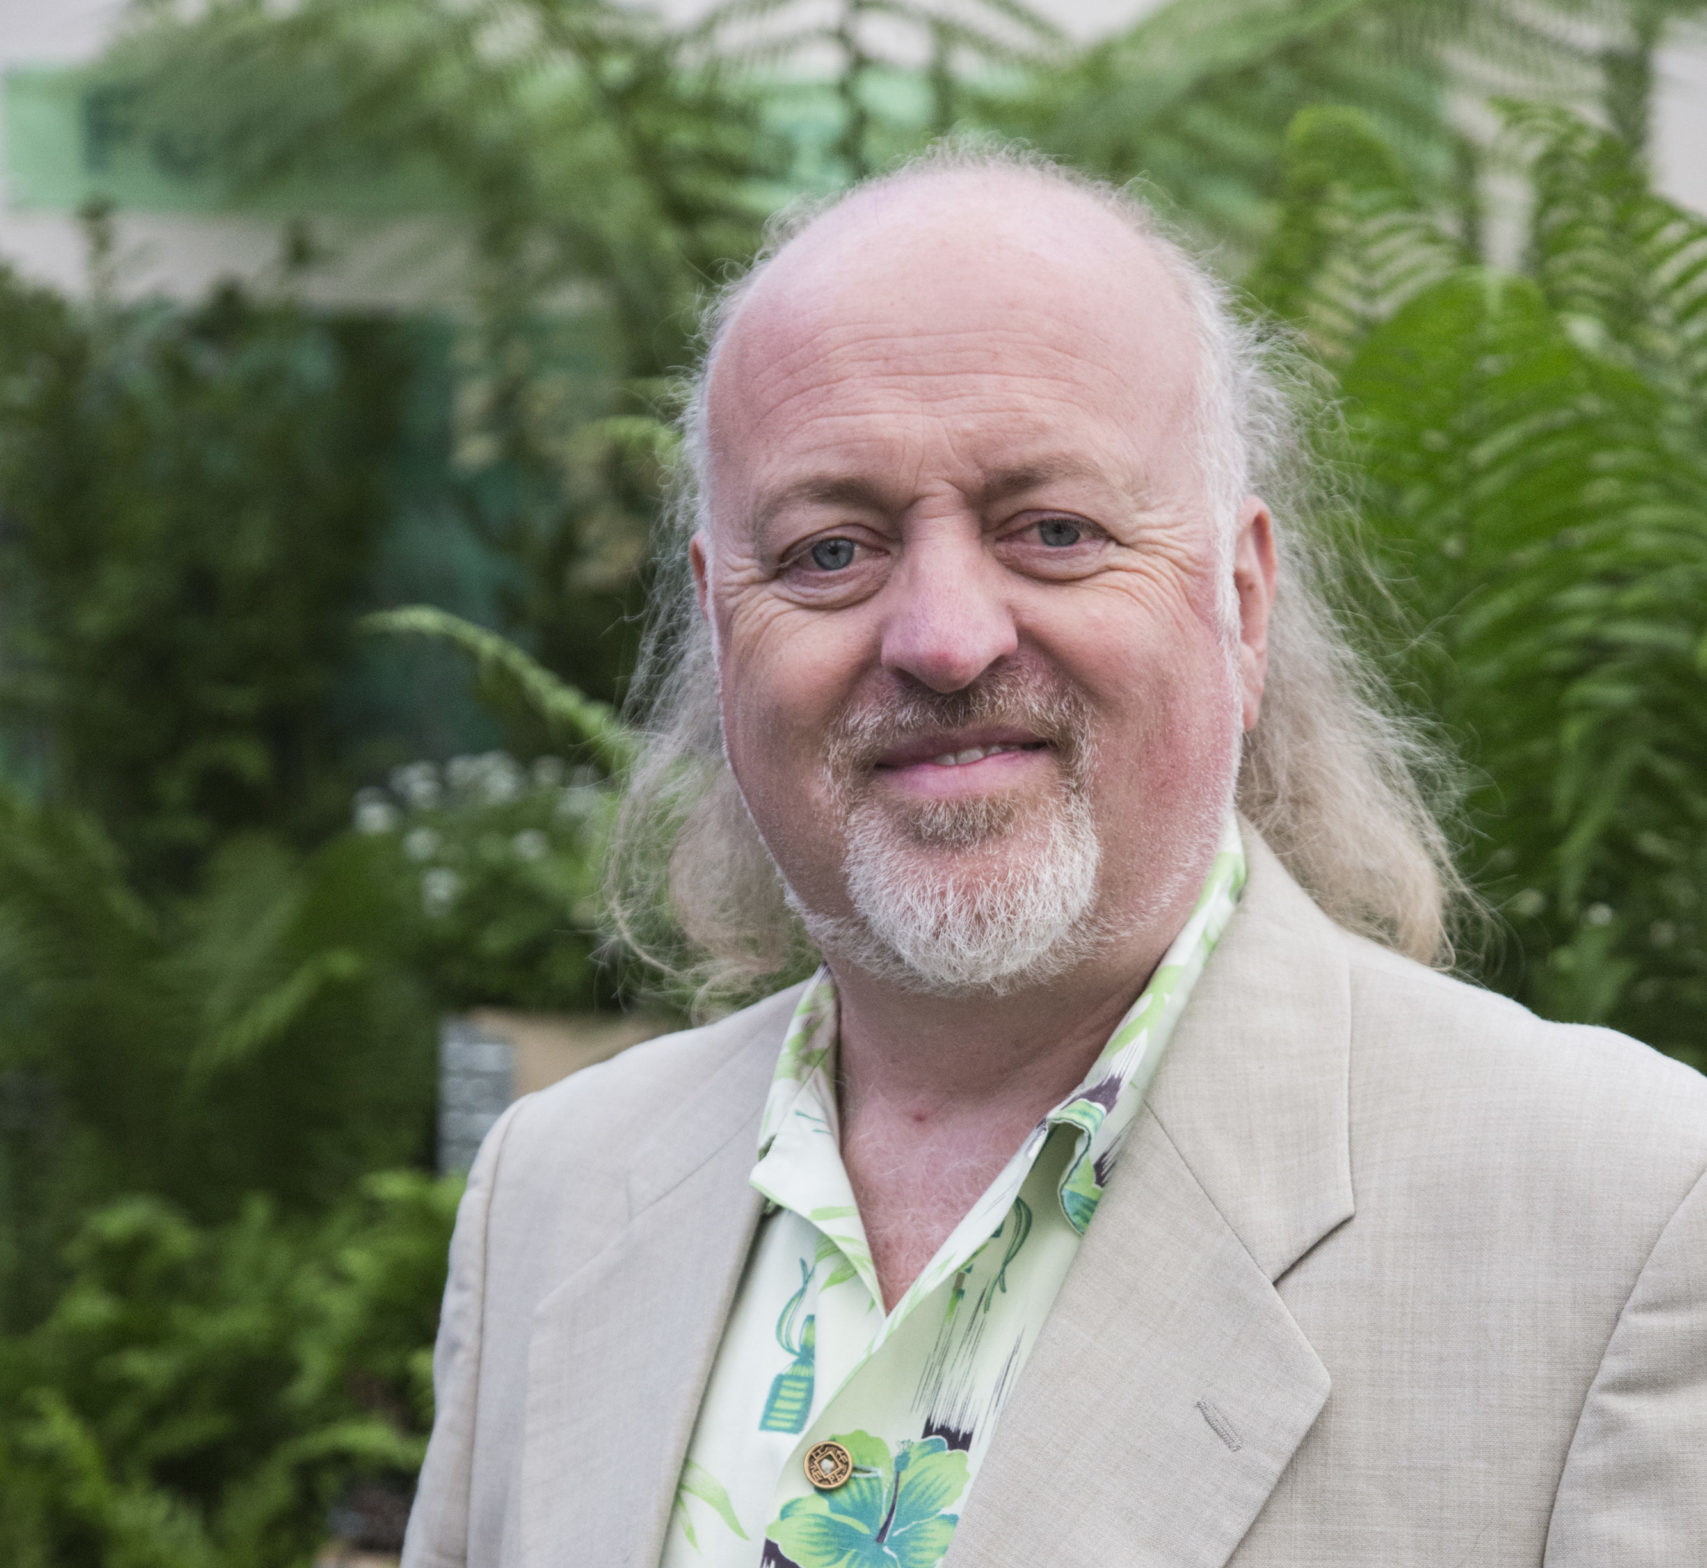 Bill Bailey joins Strictly Come Dancing